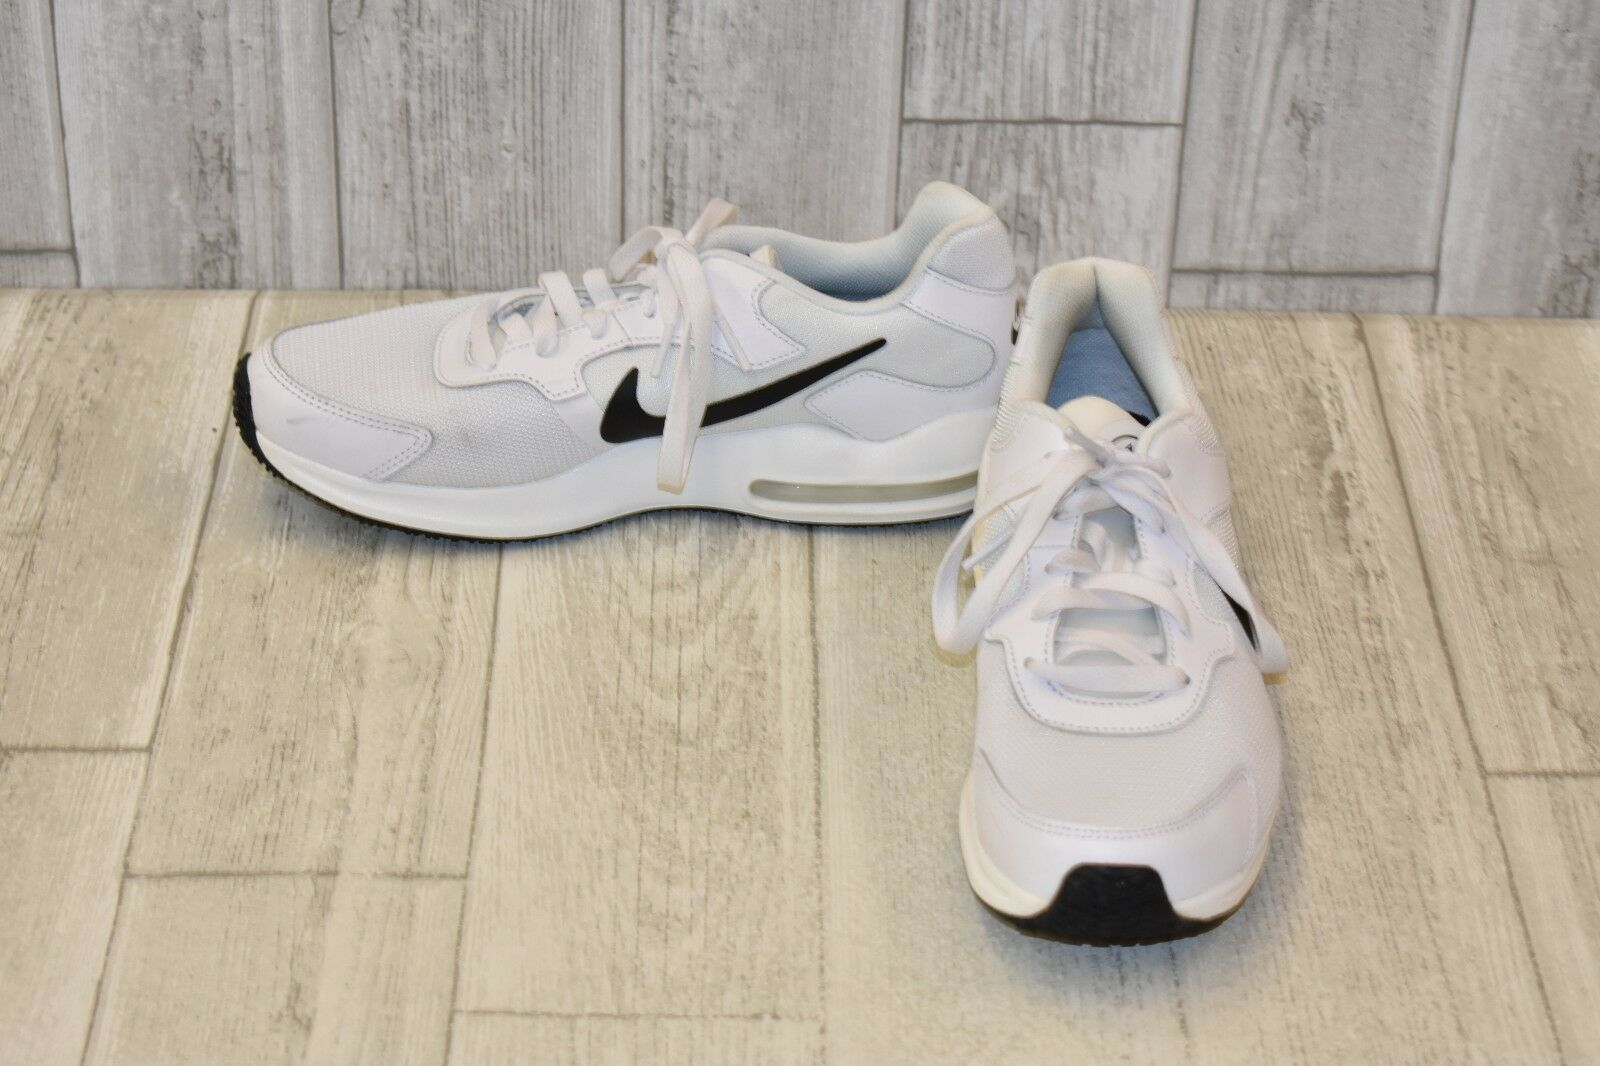 Nike Air Max Guile Shoes - Uomo Size 7, White/Nero